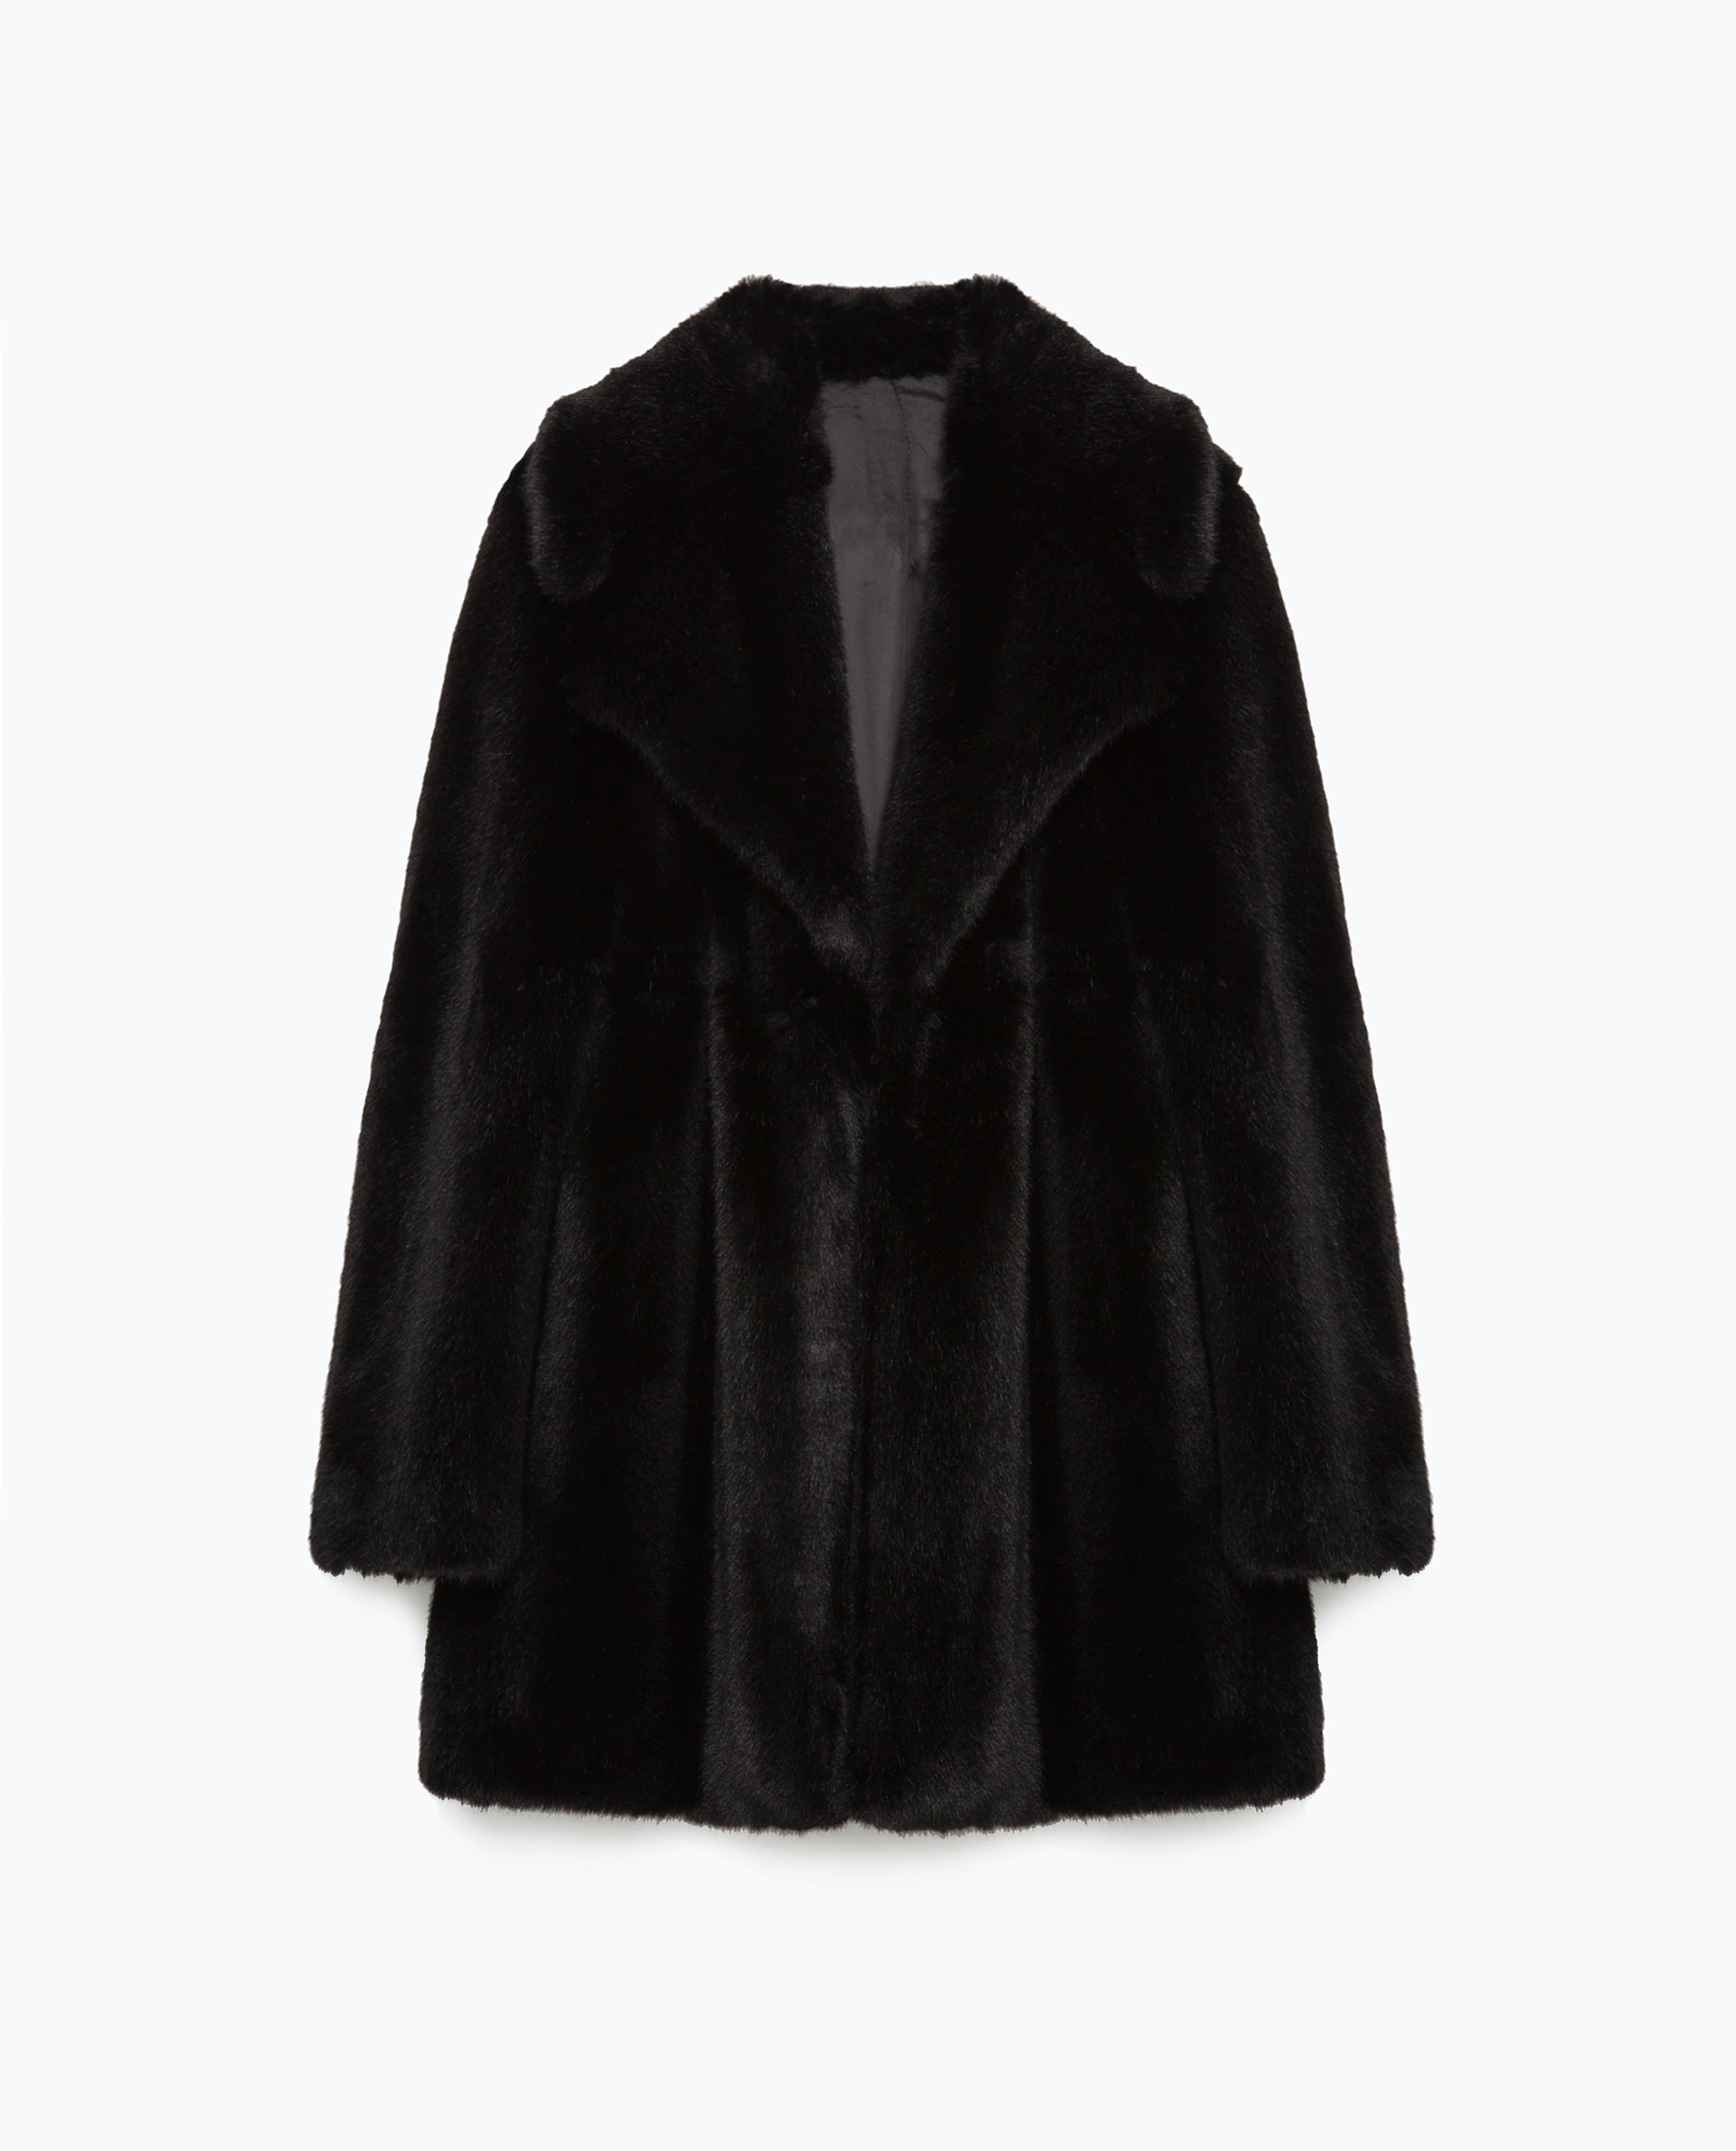 Zara Studio Faux Fur Coat in Black | Lyst